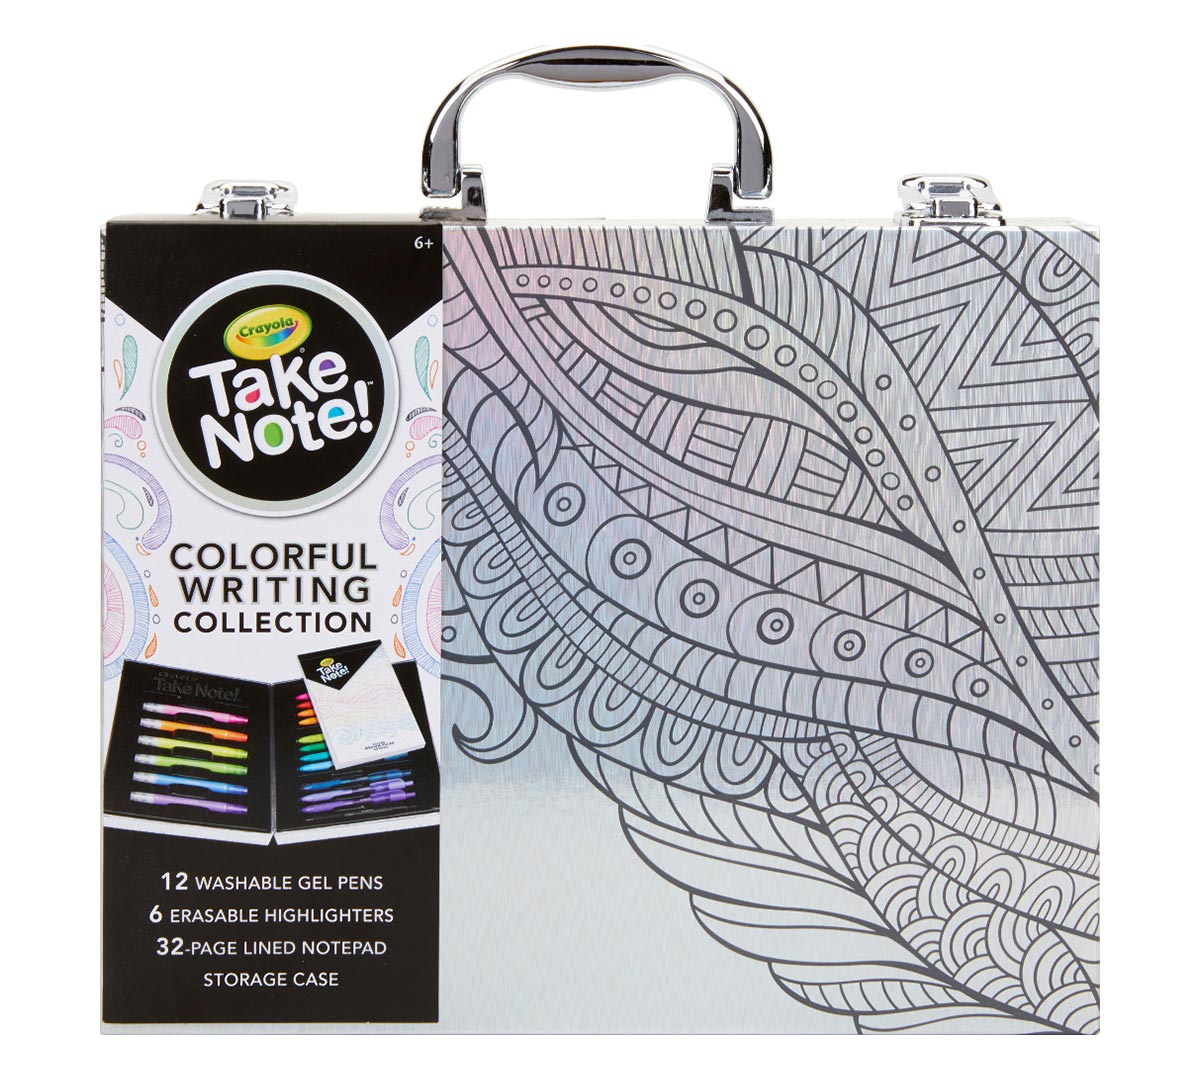 Take Note Colorful Writing Collection